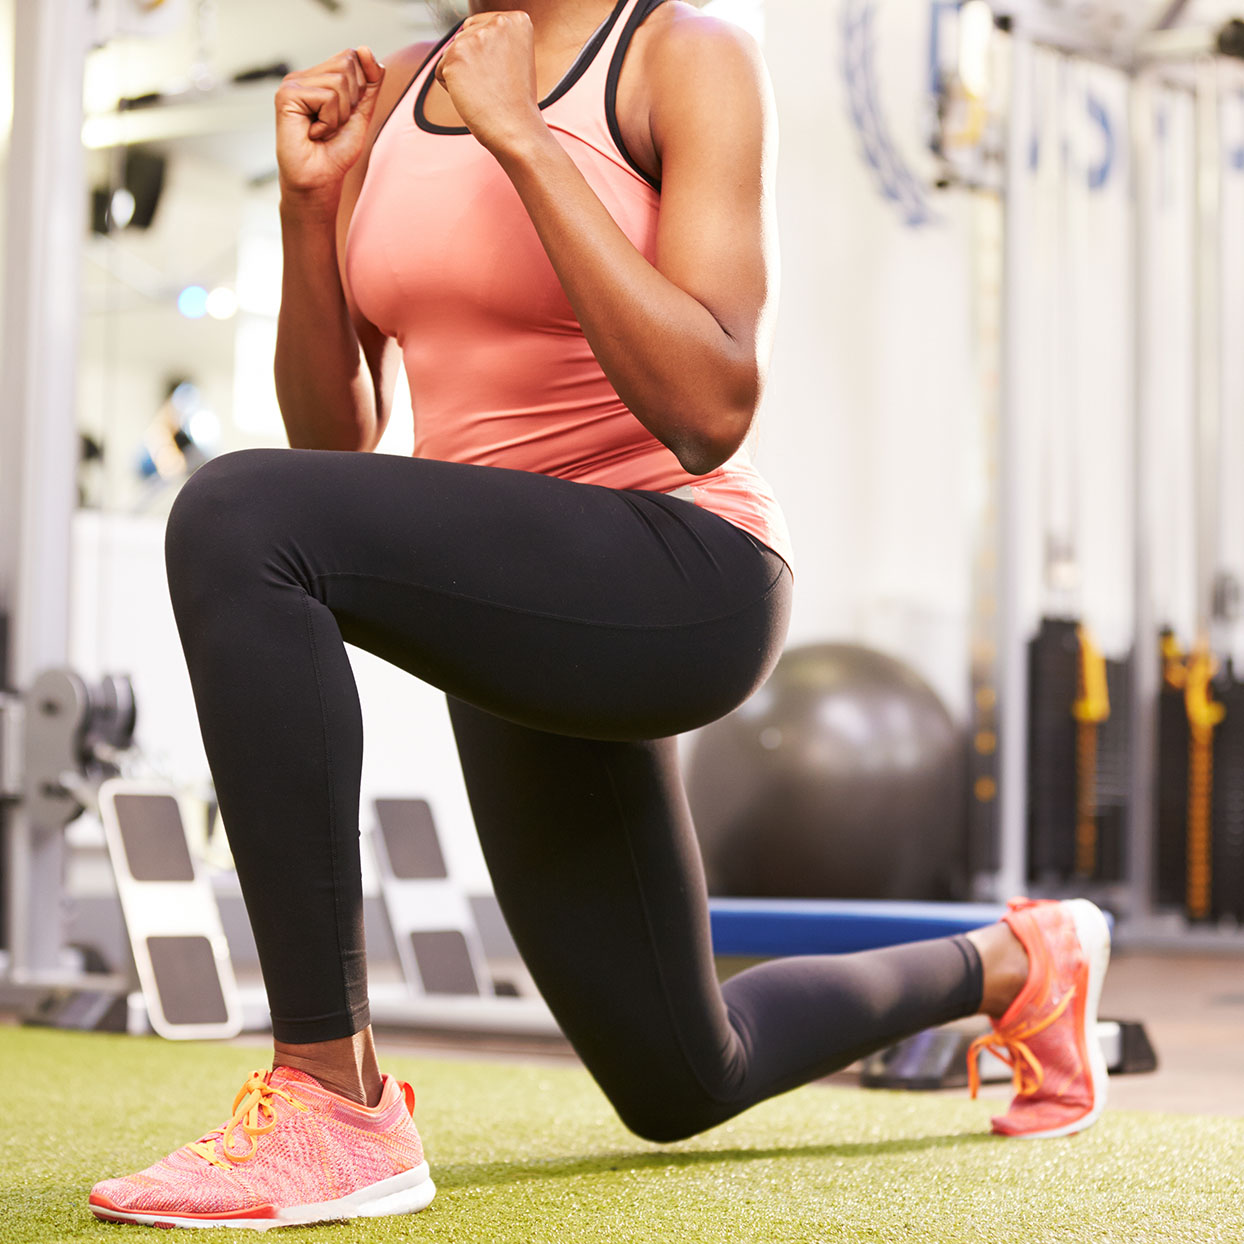 A woman does a lunge exercise